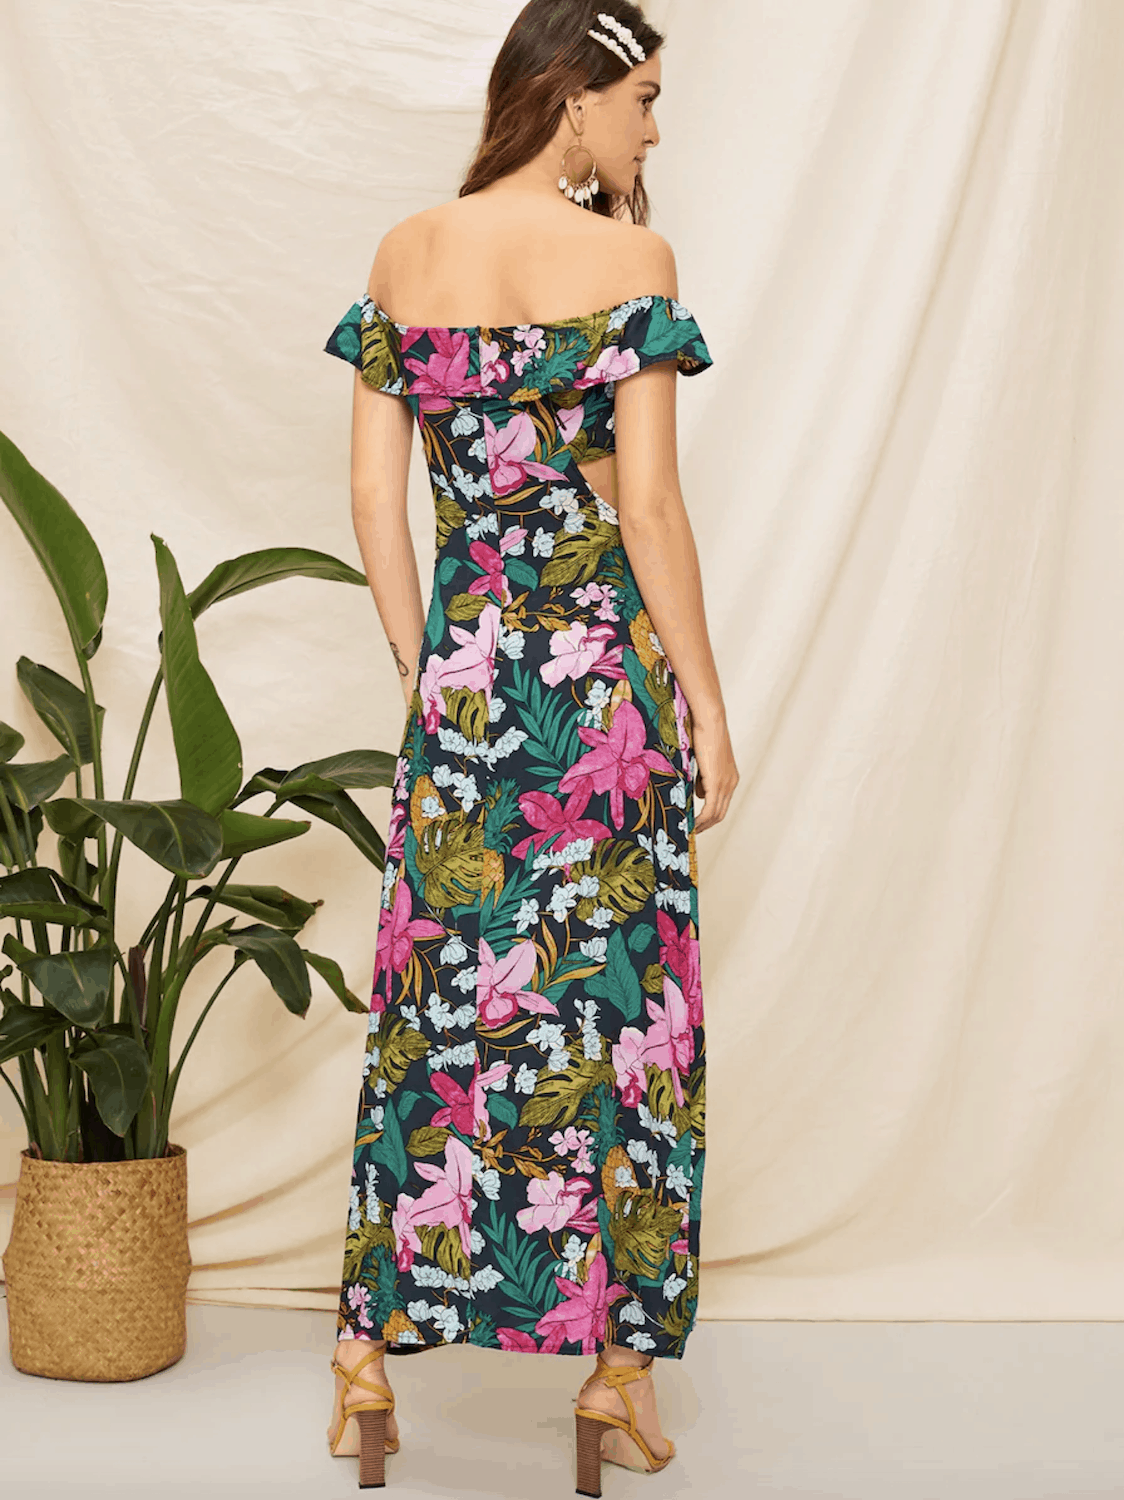 Floral Print Dresses Gorgeous Summer Honeymoon Outfits Shein Off The Shoulder Floral Print Cut Out Dress